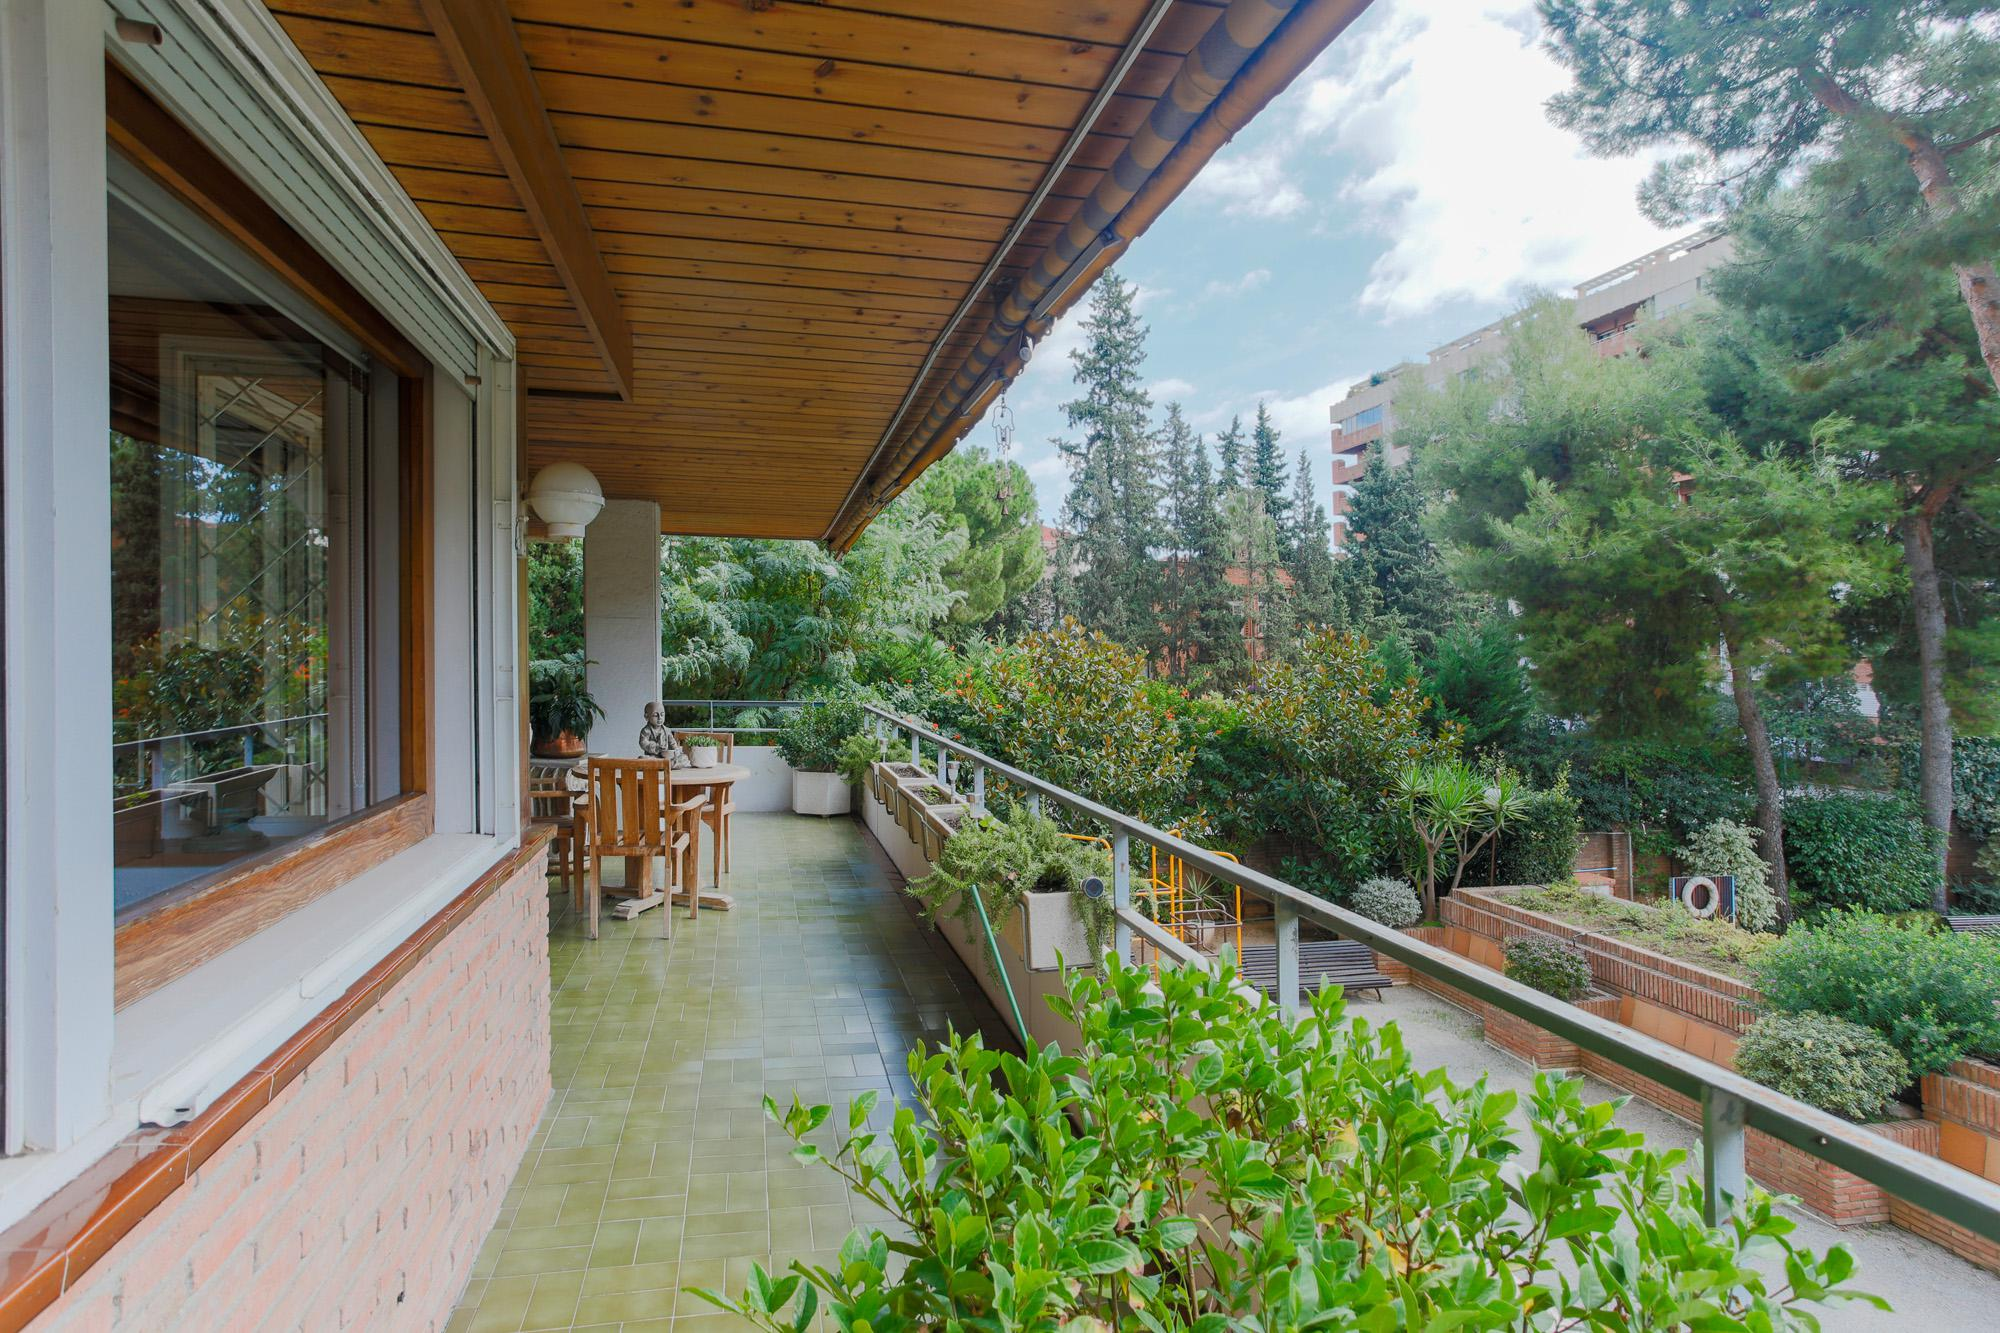 232863 Apartment for sale in Les Corts, Pedralbes 9